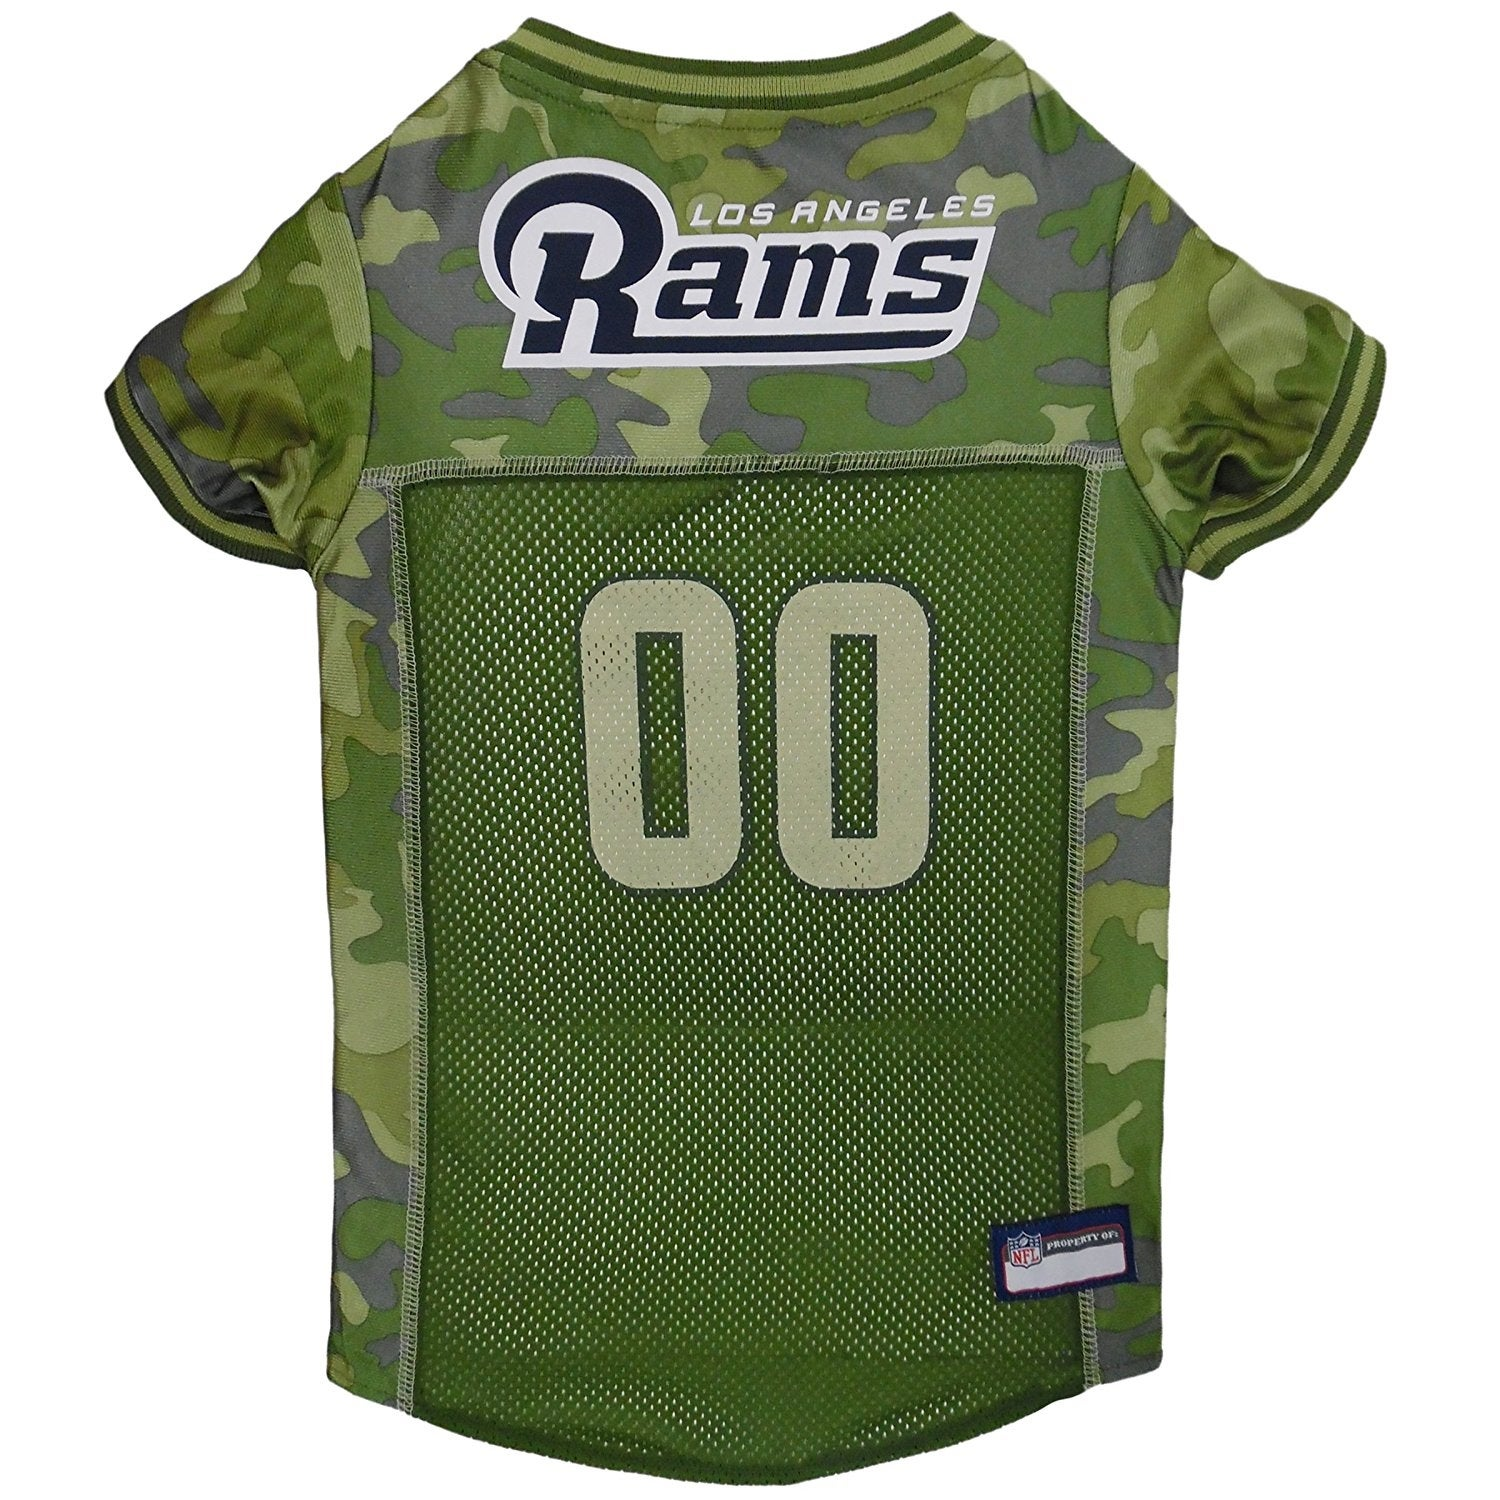 sale retailer 18fa1 7ff91 NFL Los Angeles Rams Camouflage Pet Jersey For Dogs & Cats